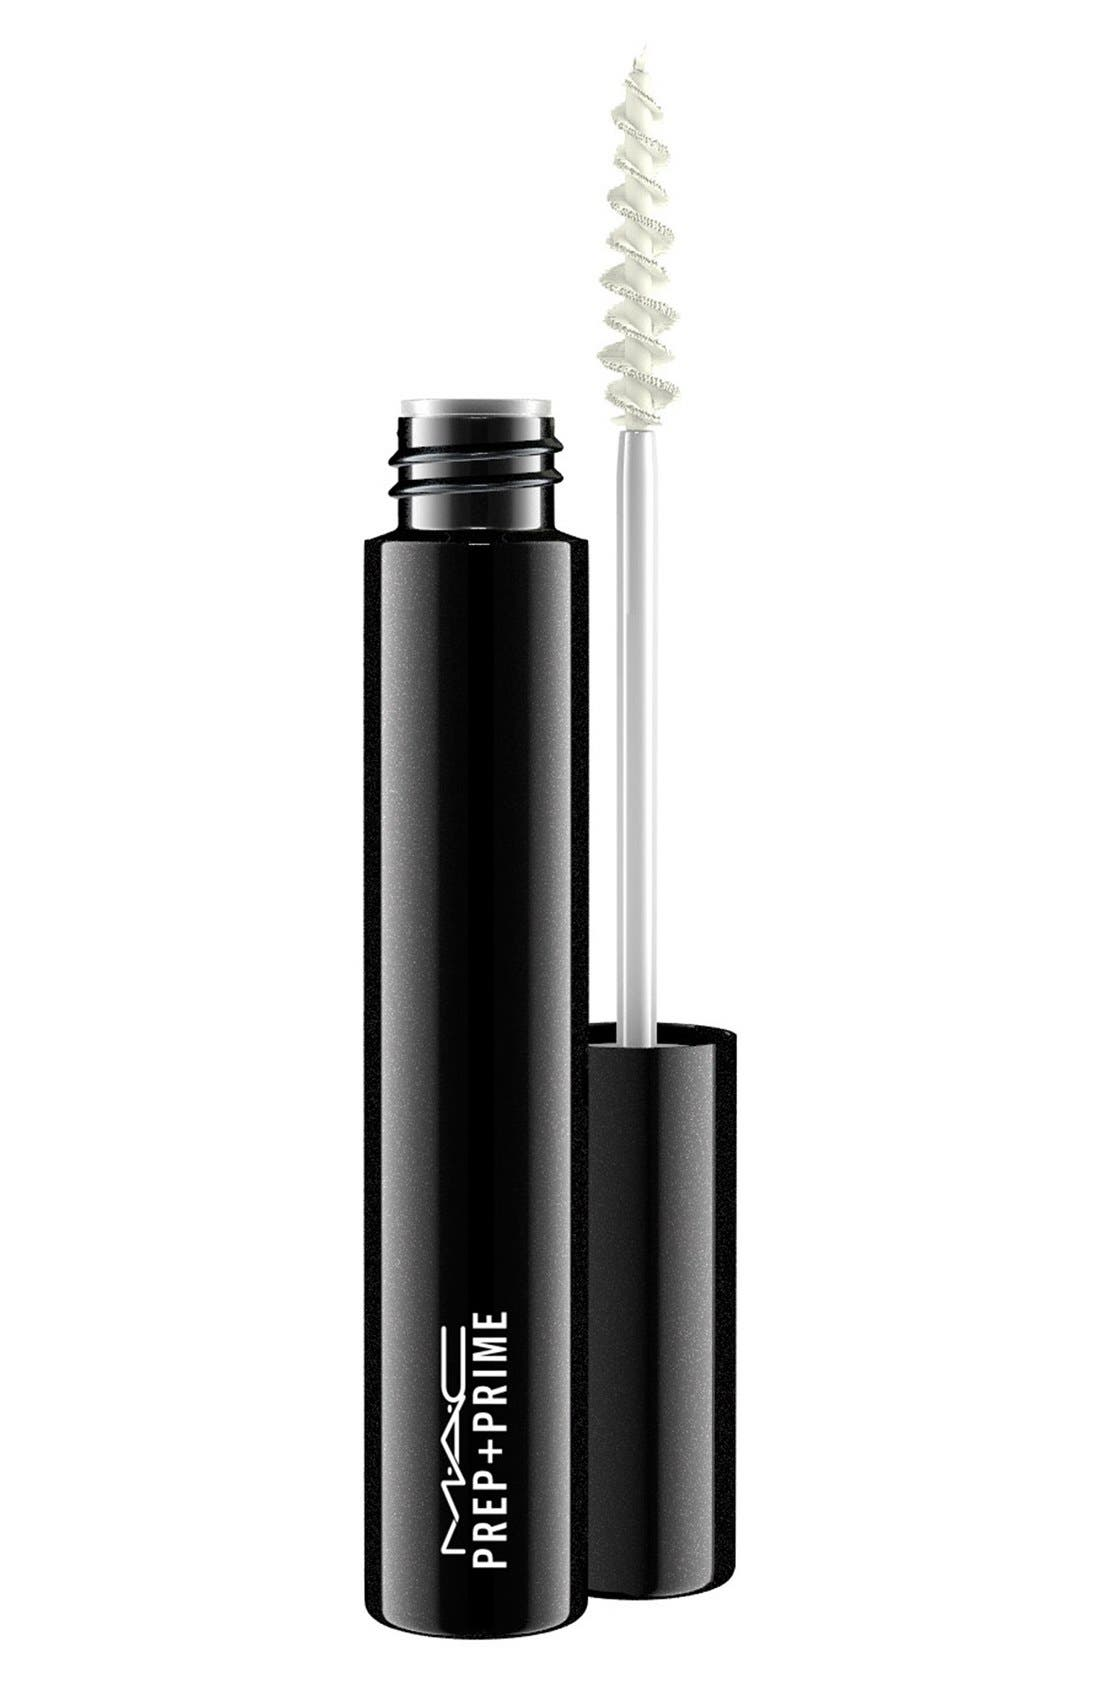 M·A·C Prep + Prime Lash,                         Main,                         color, 000